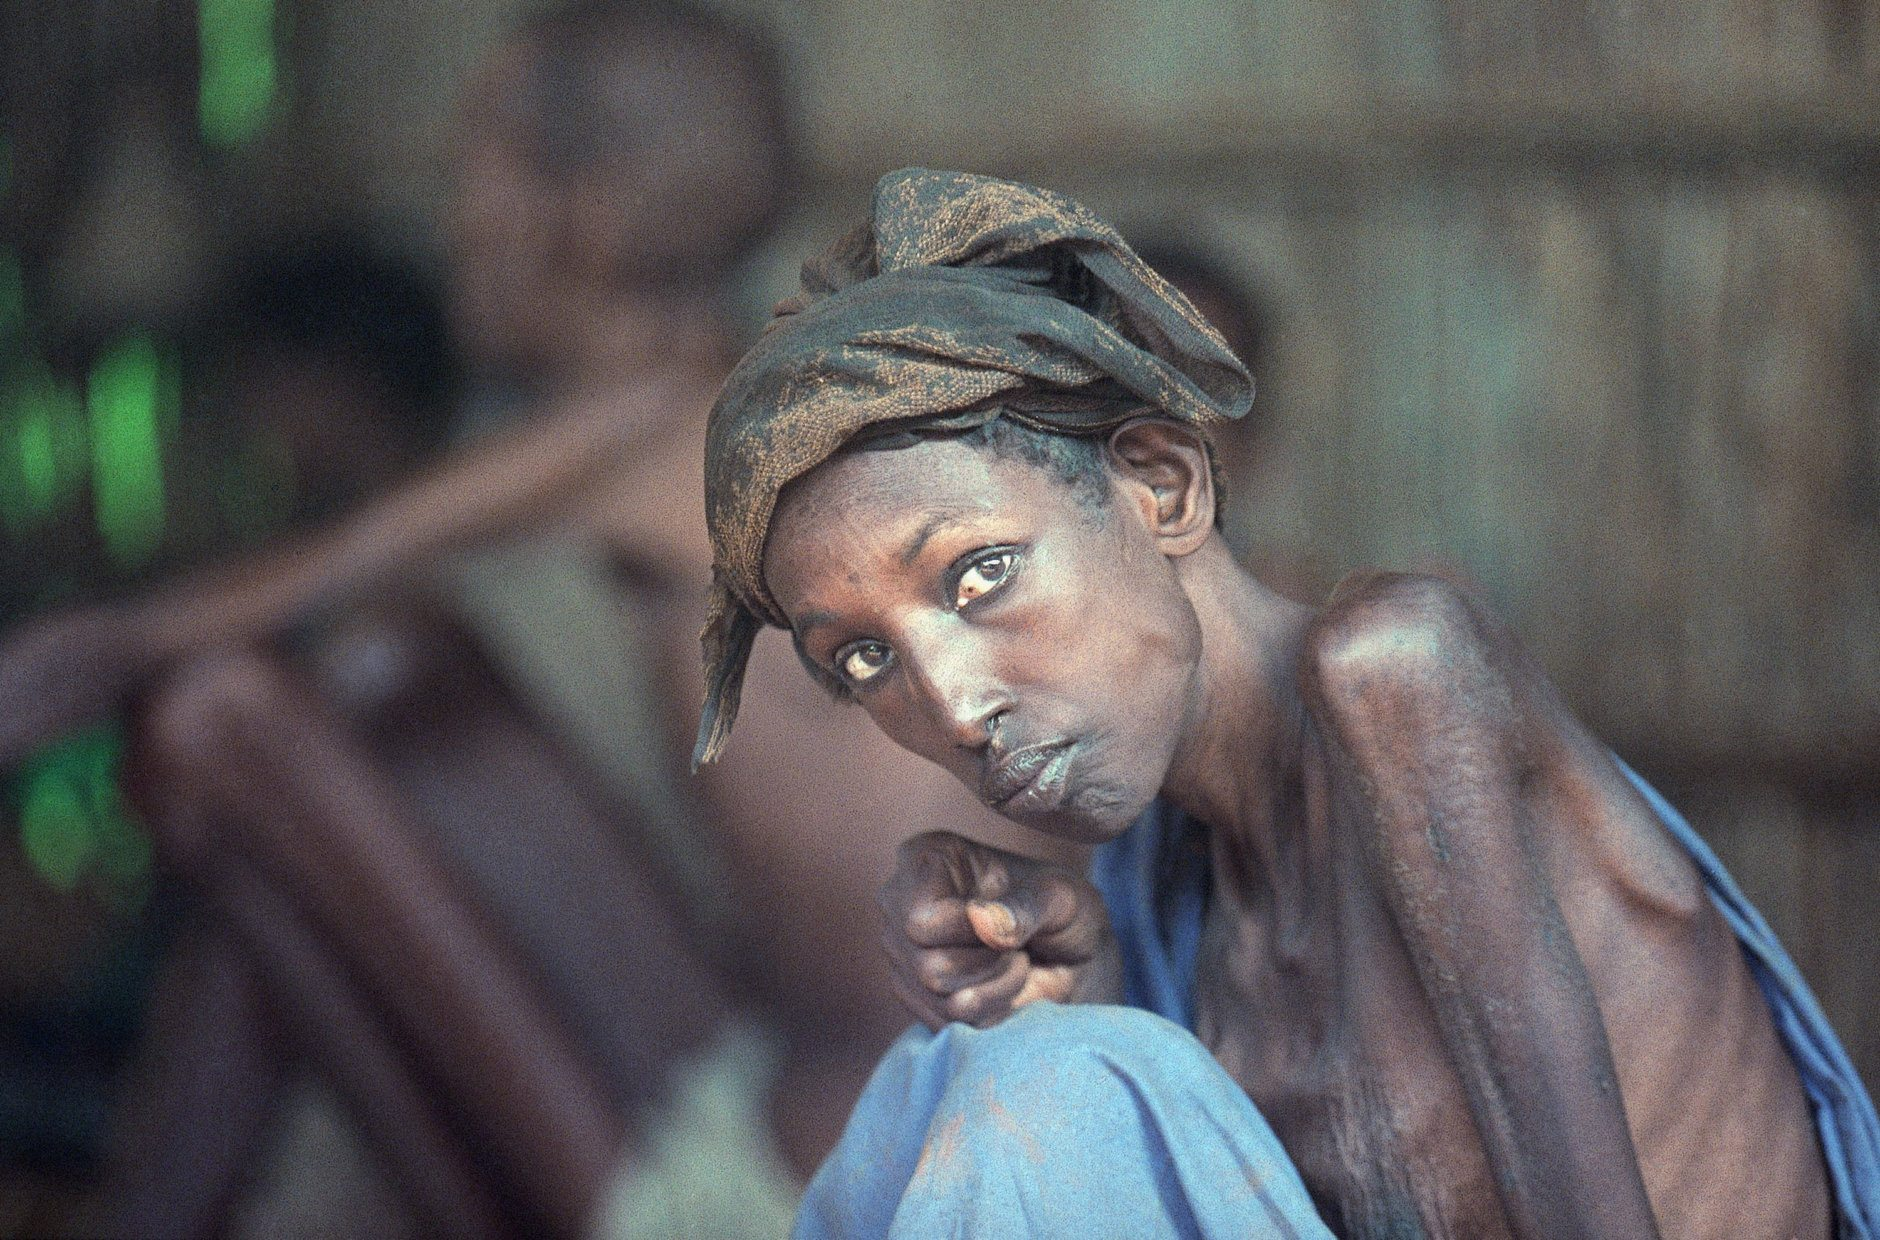 Middow Ibram Daayoue, 40, sits in an Irish Concern feeding center dedicated to adults, Tuesday, Dec. 16, 1992 in Baidoa. The adult sector of Somalia's population in struggling quietly to survive as most of the attention is focused on Somalia's starving young. (AP Photo/Jerome Delay)